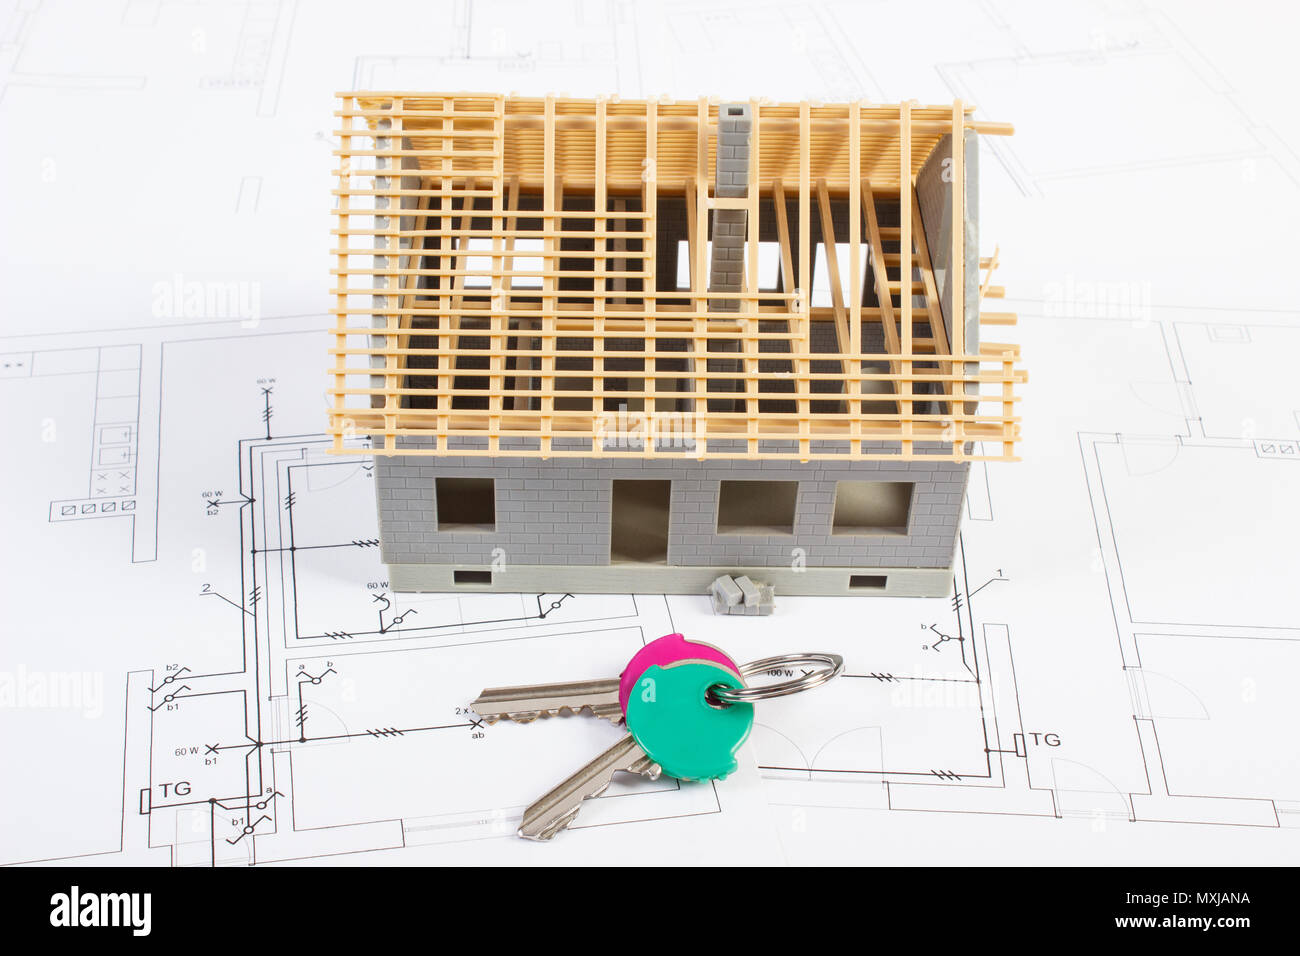 electrical plan new home small house under construction and home keys lying on electrical  small house under construction and home